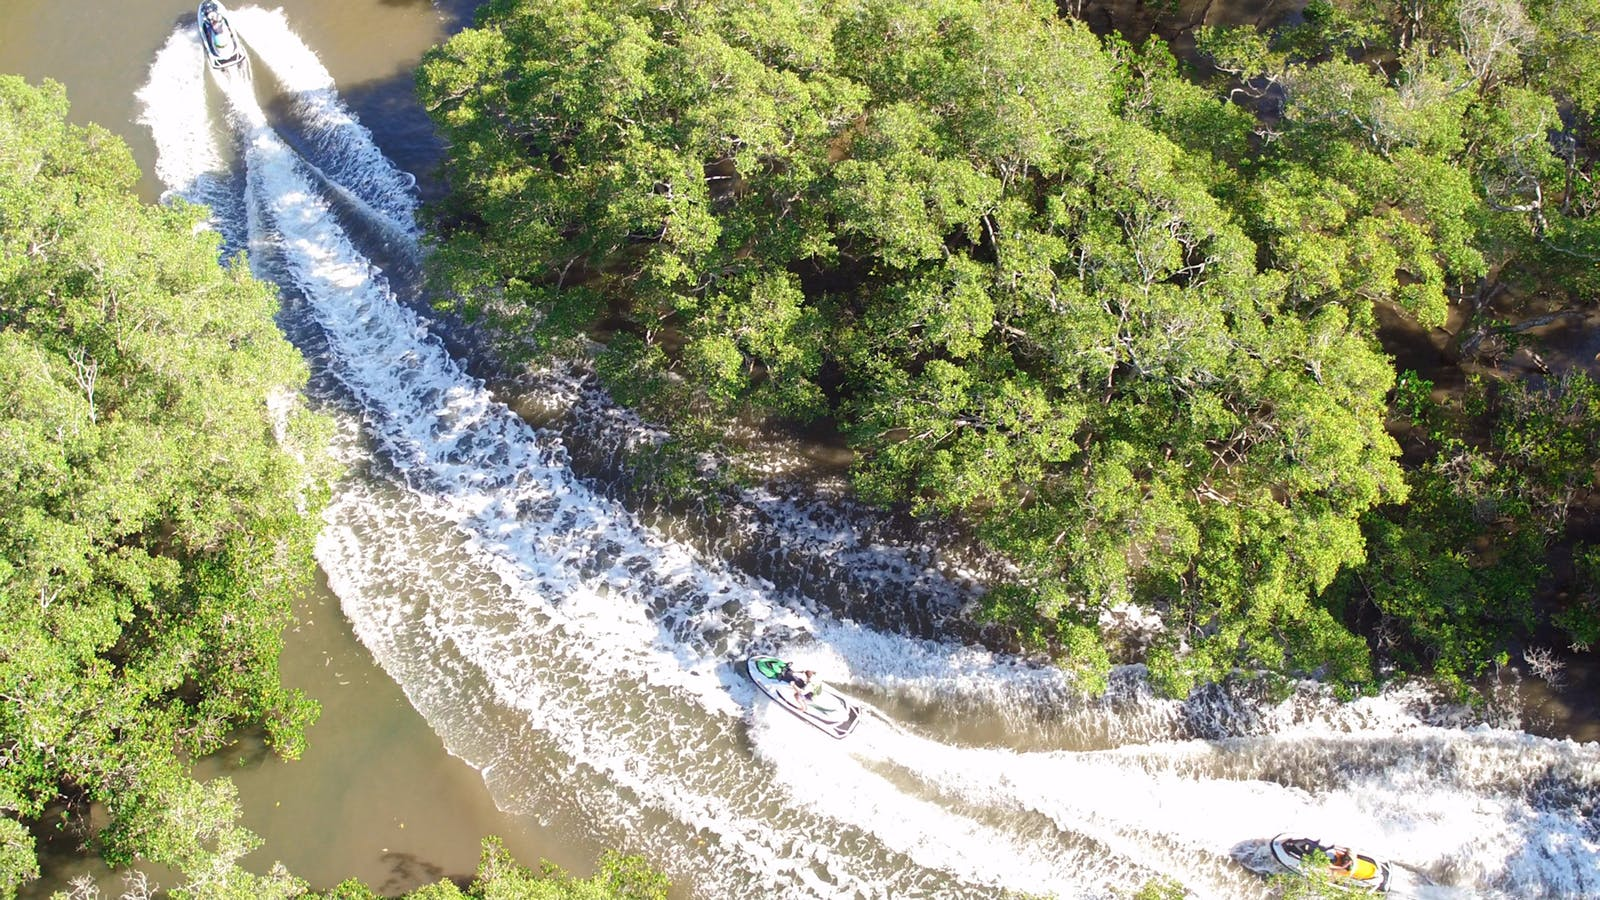 Blast your way through the mangroves